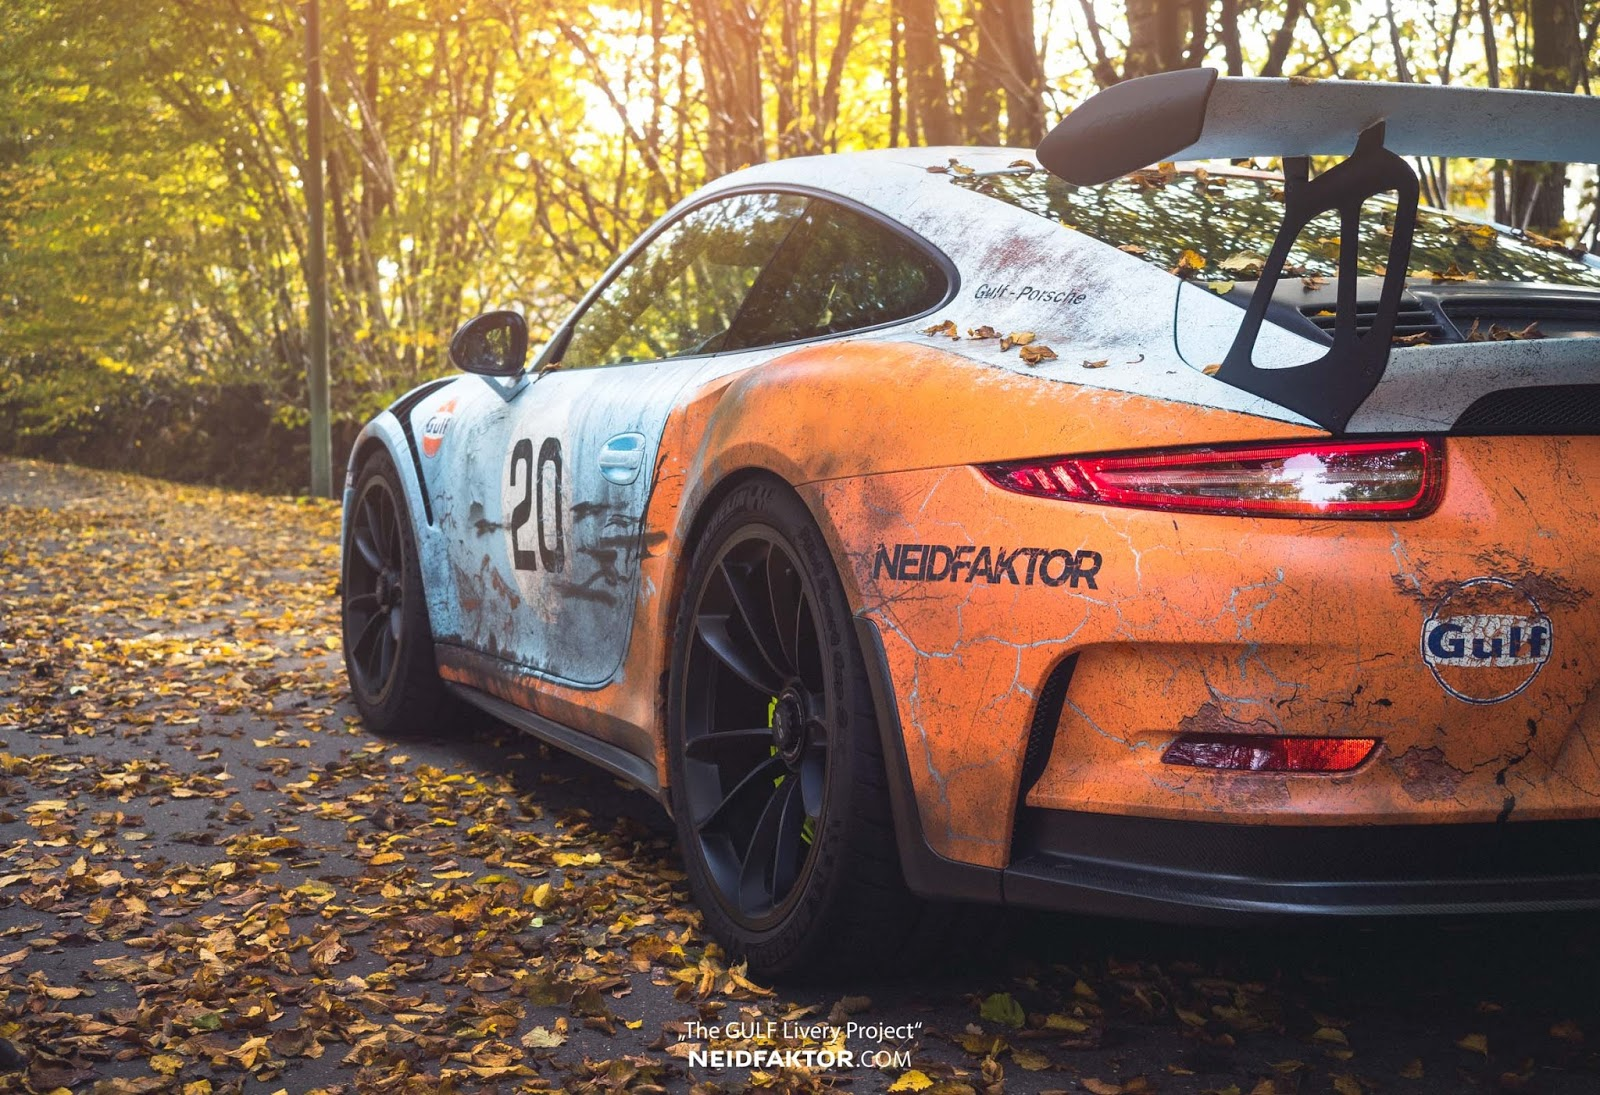 Porsche 911 Gt3 Rs Poses With Rusty Gulf Livery Carscoops